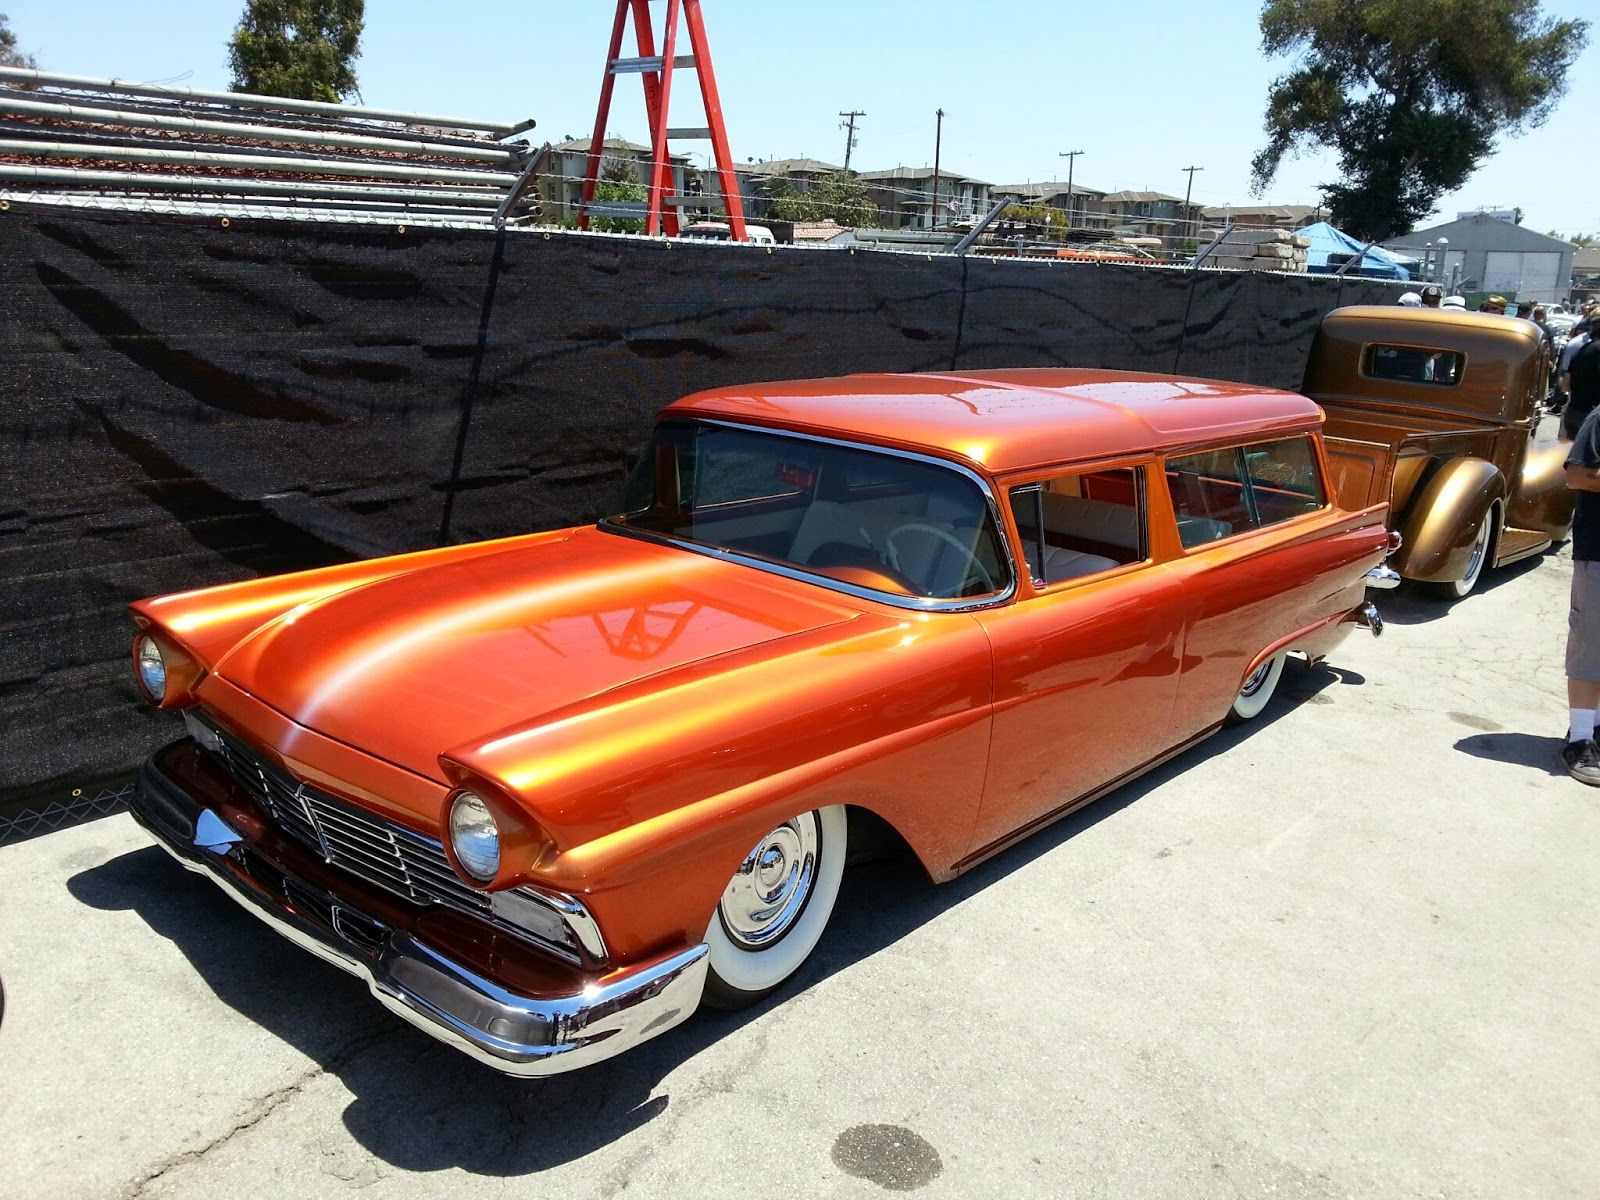 Custom 1957 Ford Station Wagon with some really great